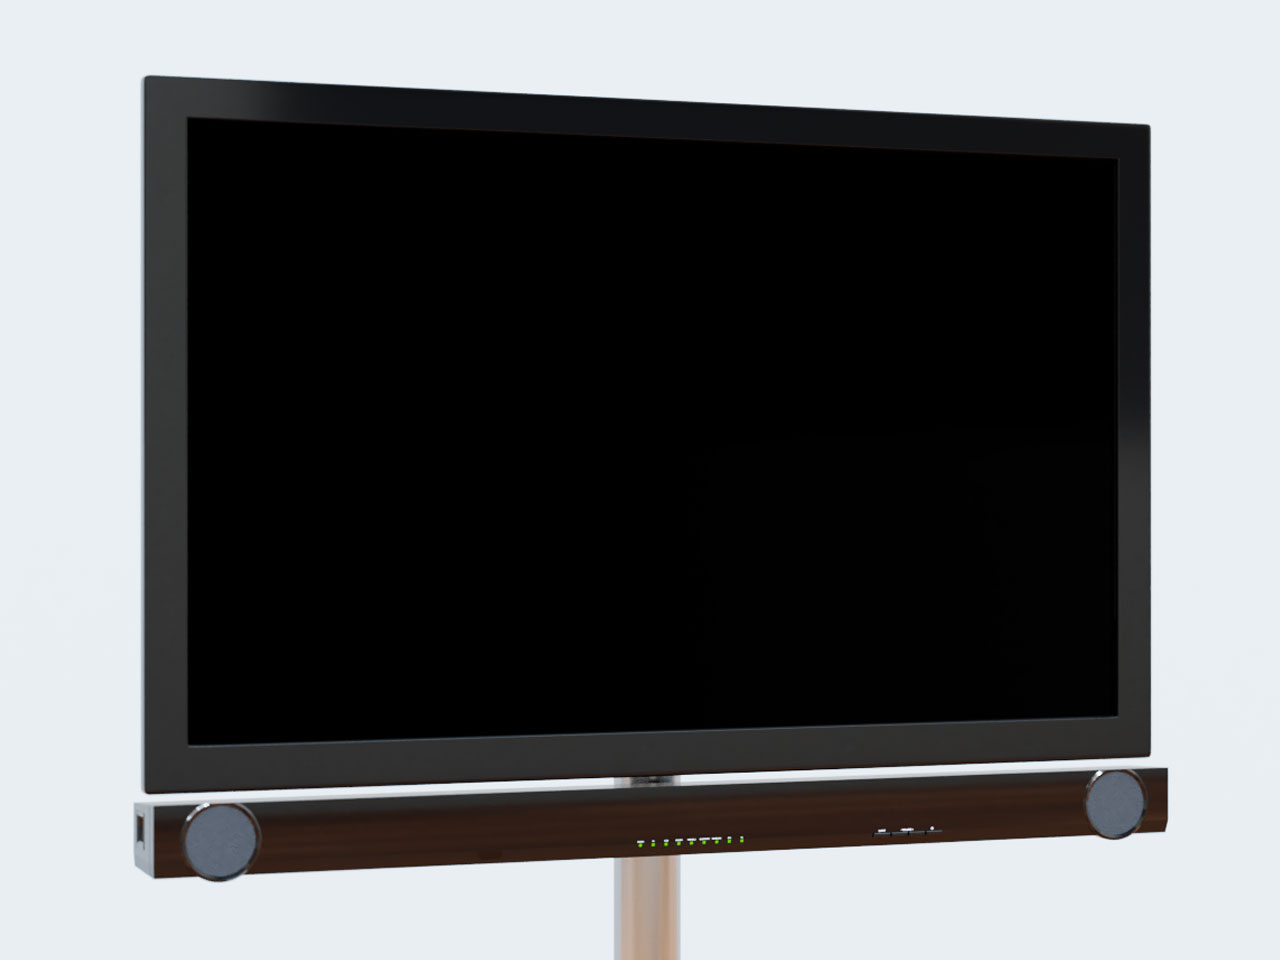 wissmann halterung soundbar centerspeaker g nstig kaufen cmb systeme. Black Bedroom Furniture Sets. Home Design Ideas